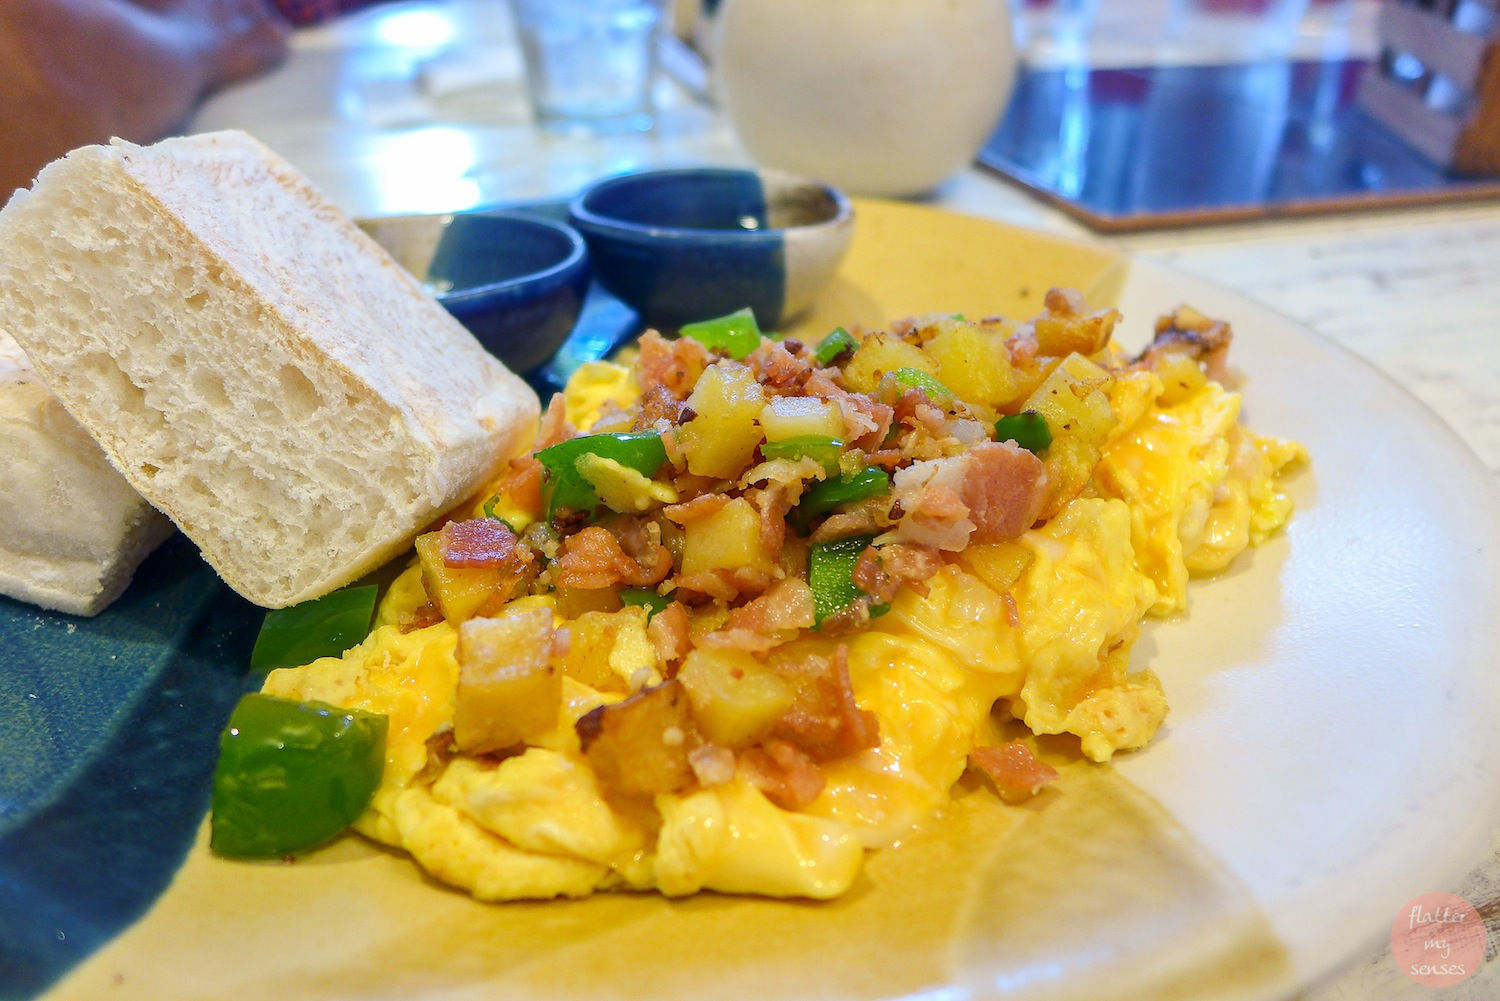 Country Omelette - Bacon, Potato, Cheese and Leeks (Php 220)